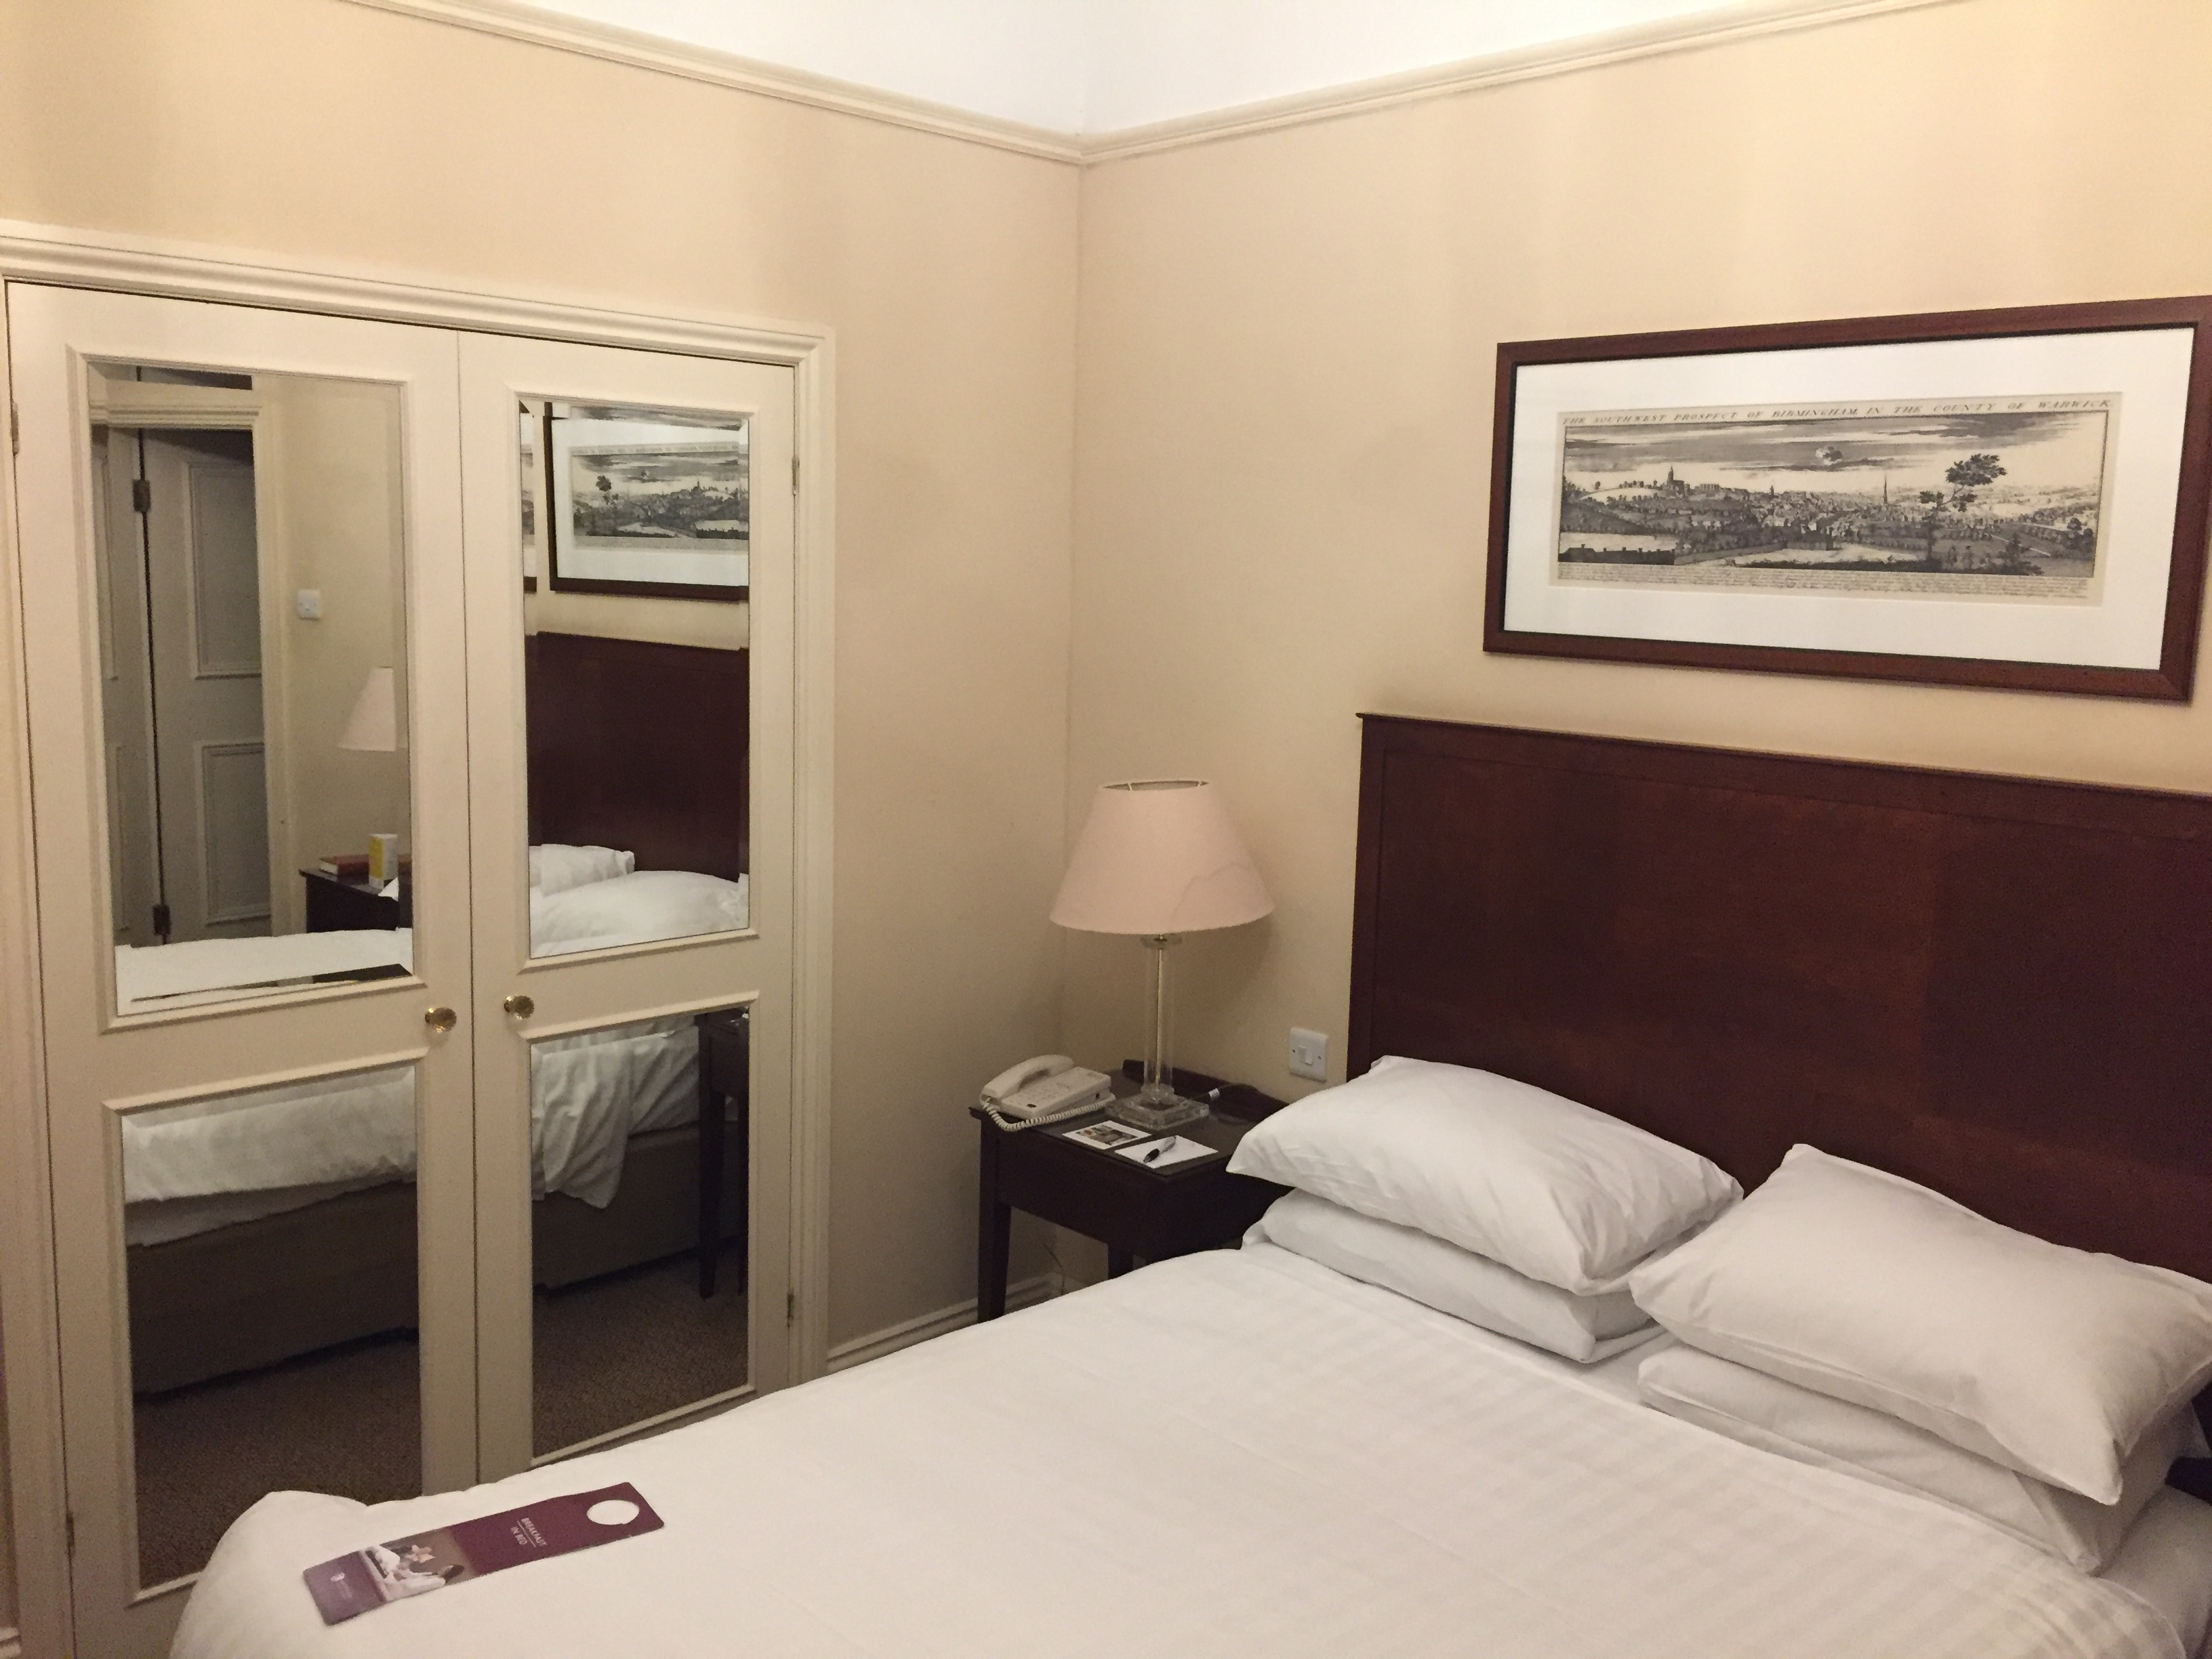 Hotel room with a double-bed next to a wardrobe with mirrored doors. In the reflection on the doors you can see the entrance to the en-suite bathroom on the other side of the room.